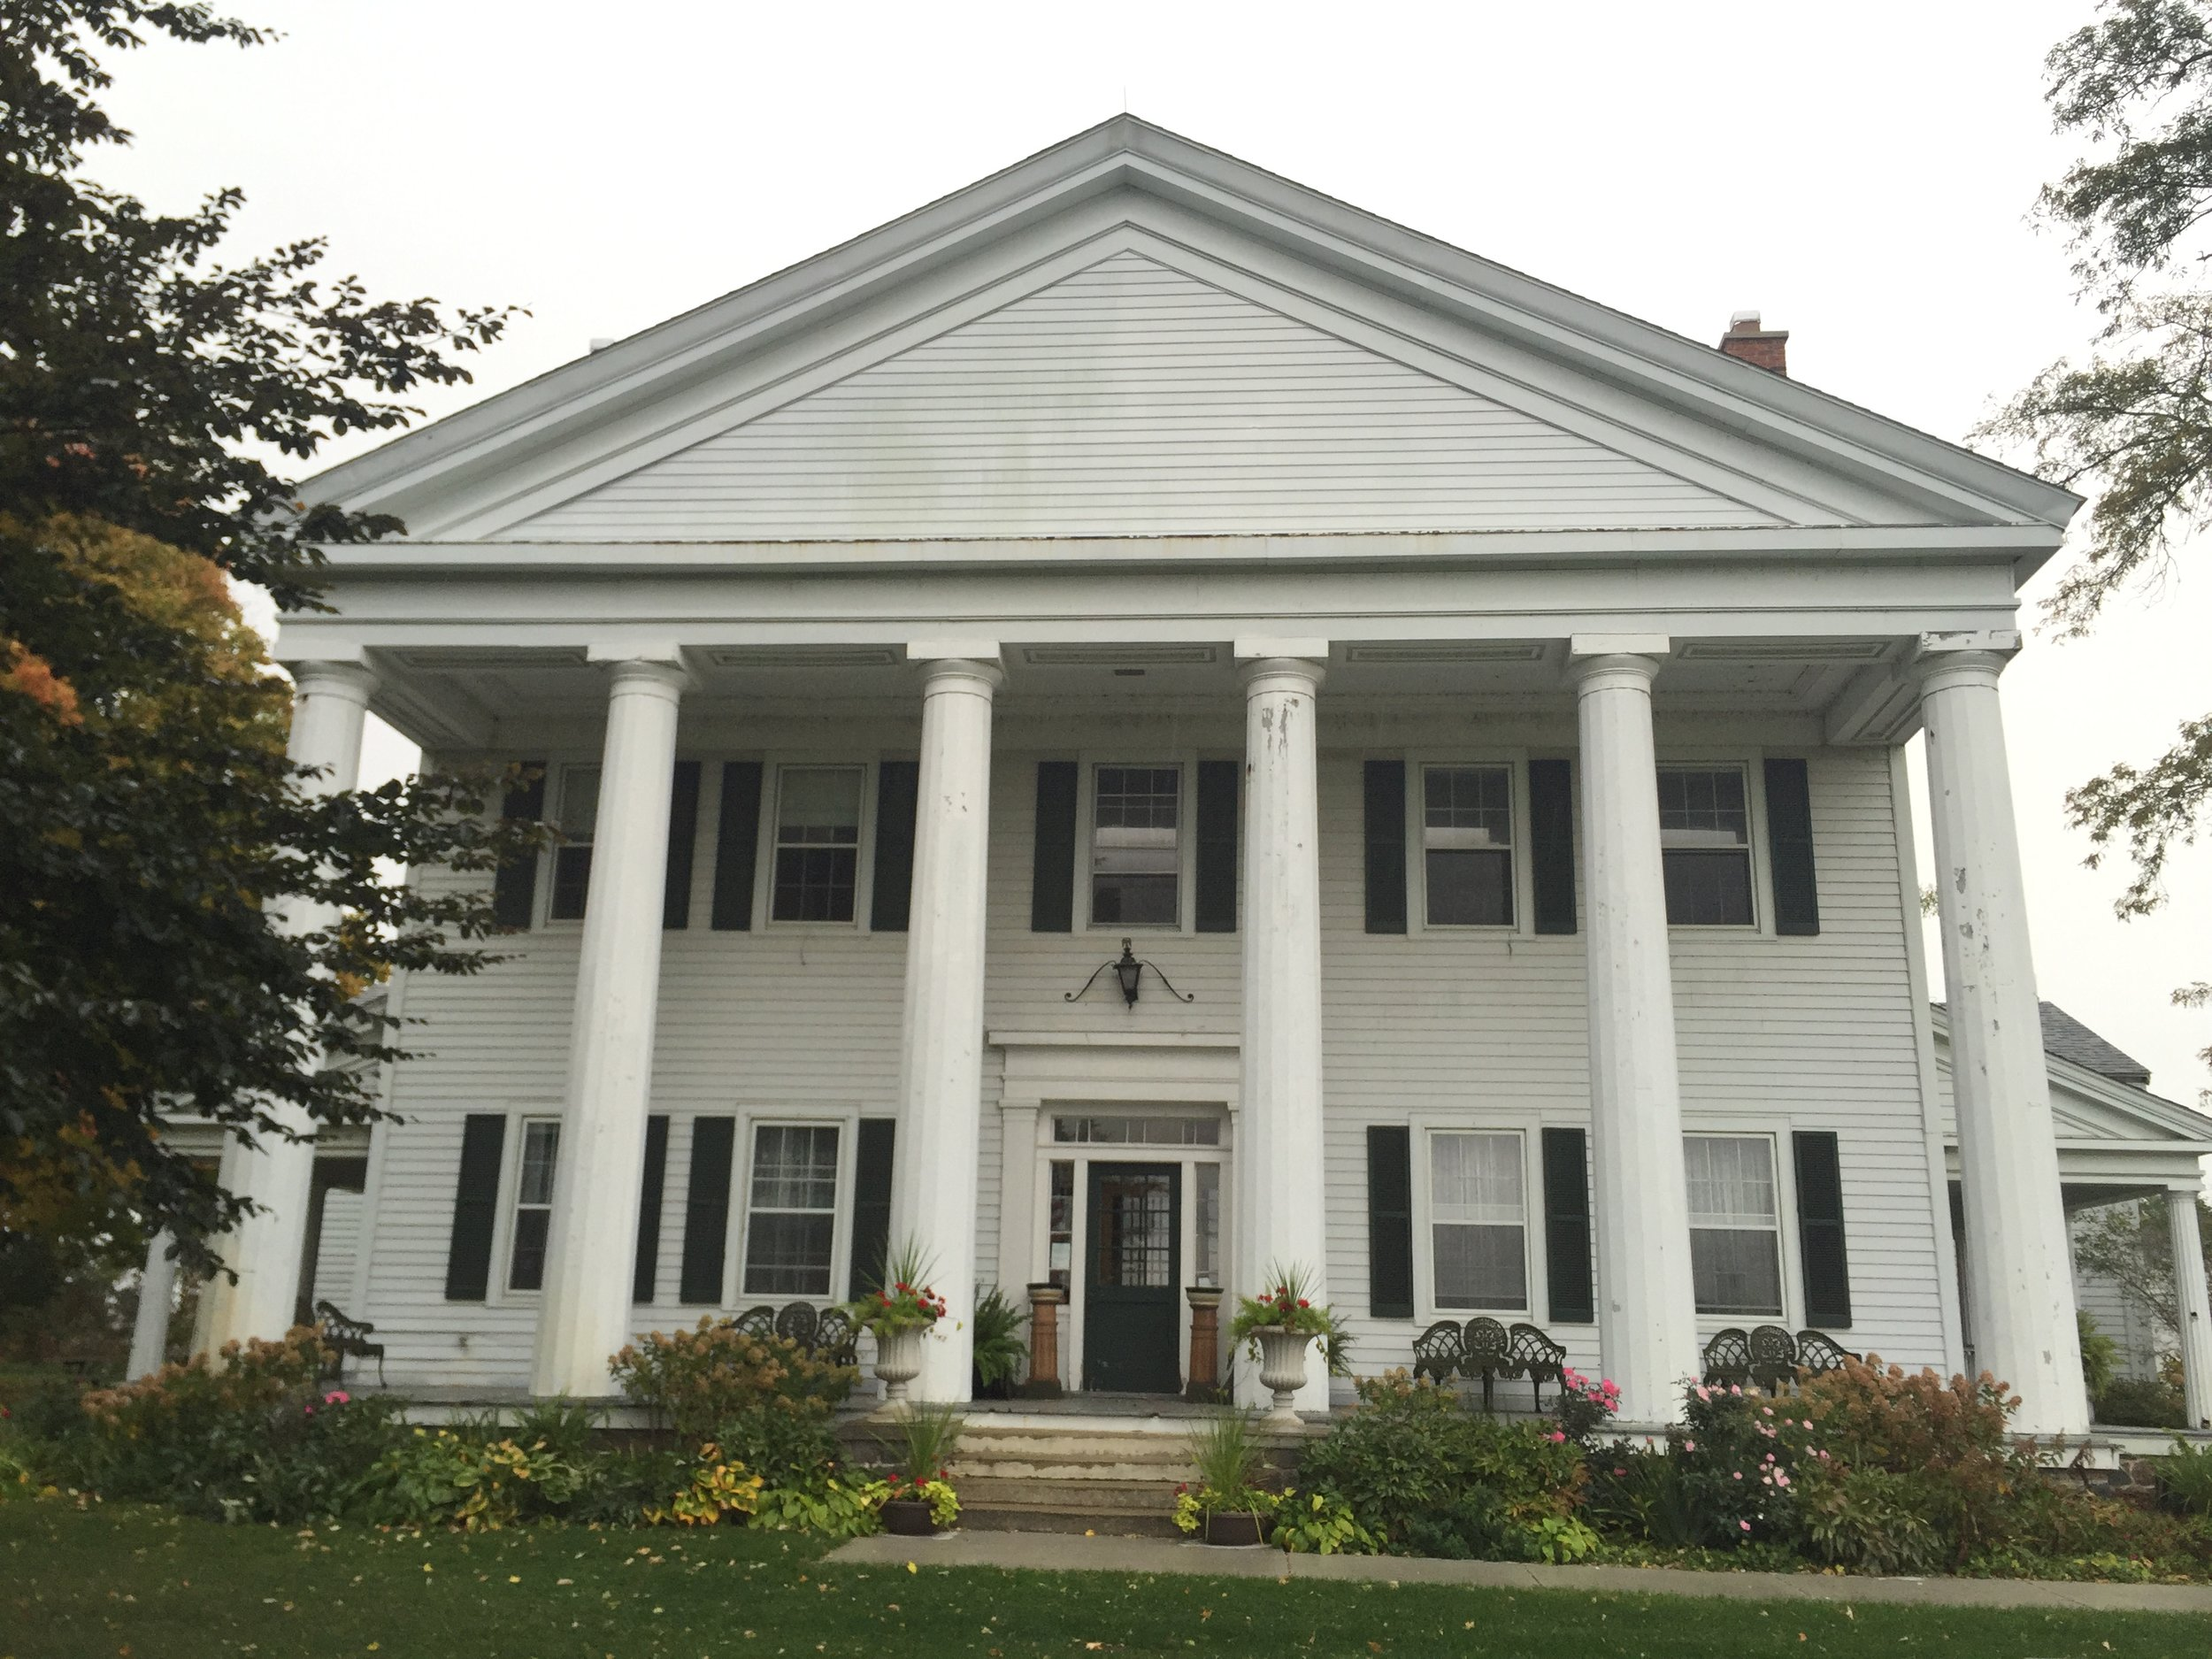 Gordon Hall, Dexter Michigan